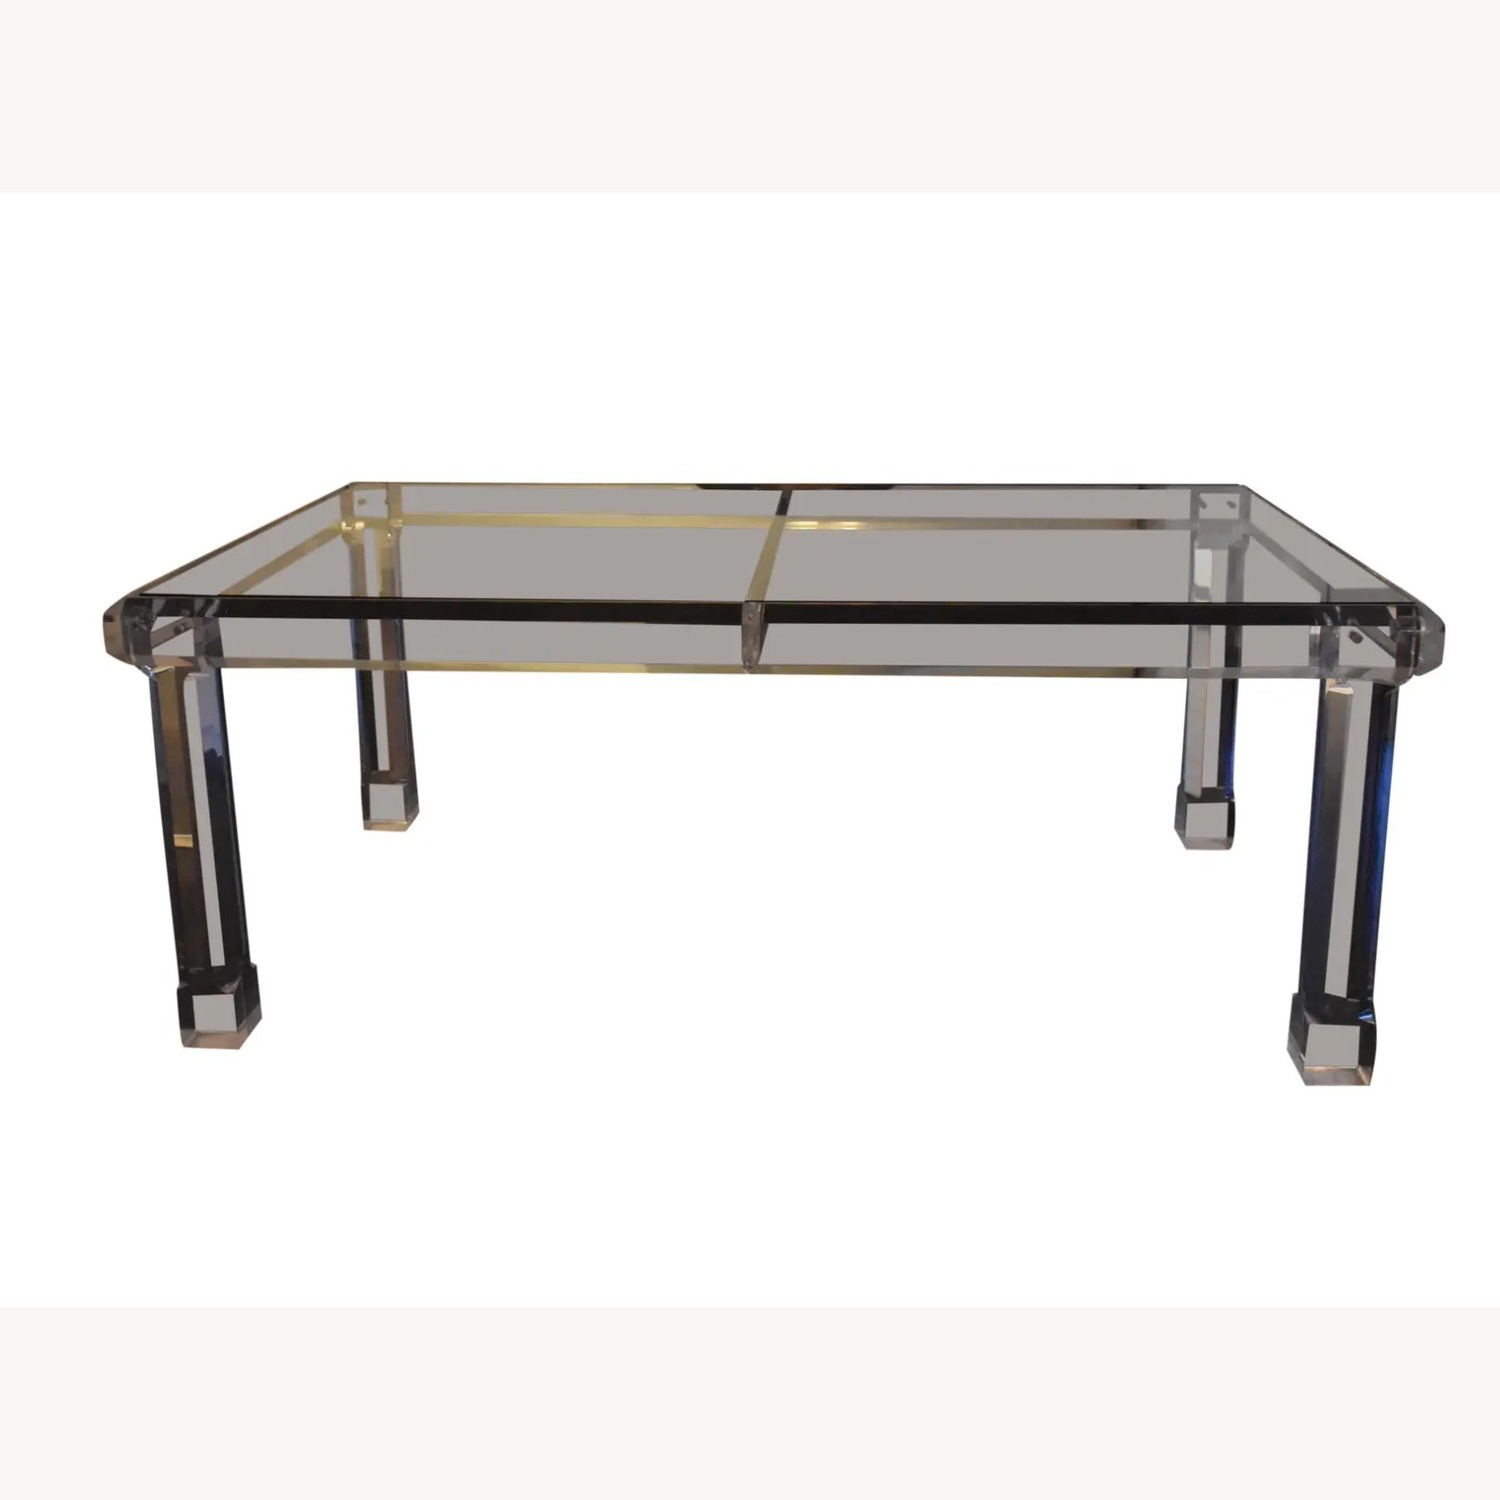 1970s Glass & Lucite Dining Room Table - image-1